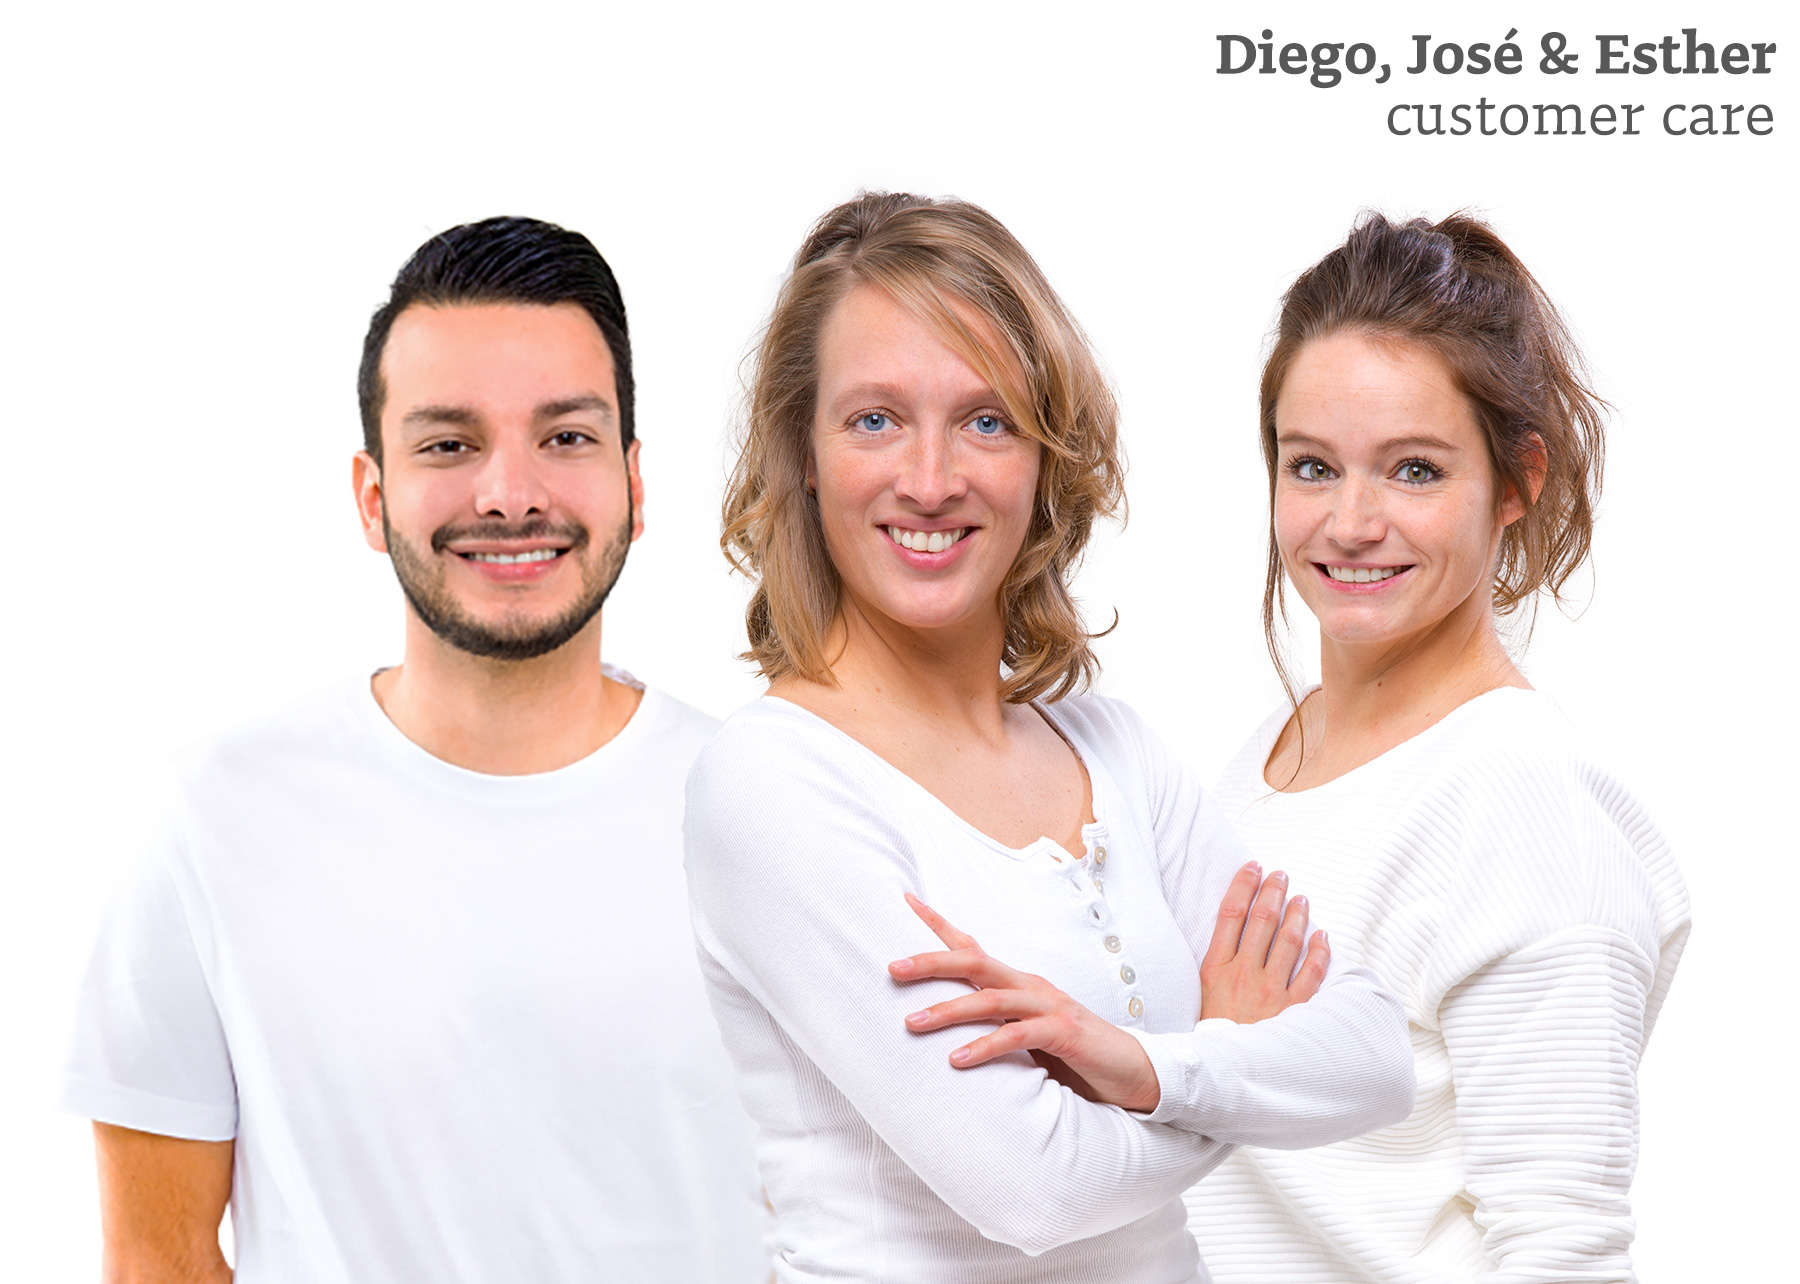 Diego, José, Esther